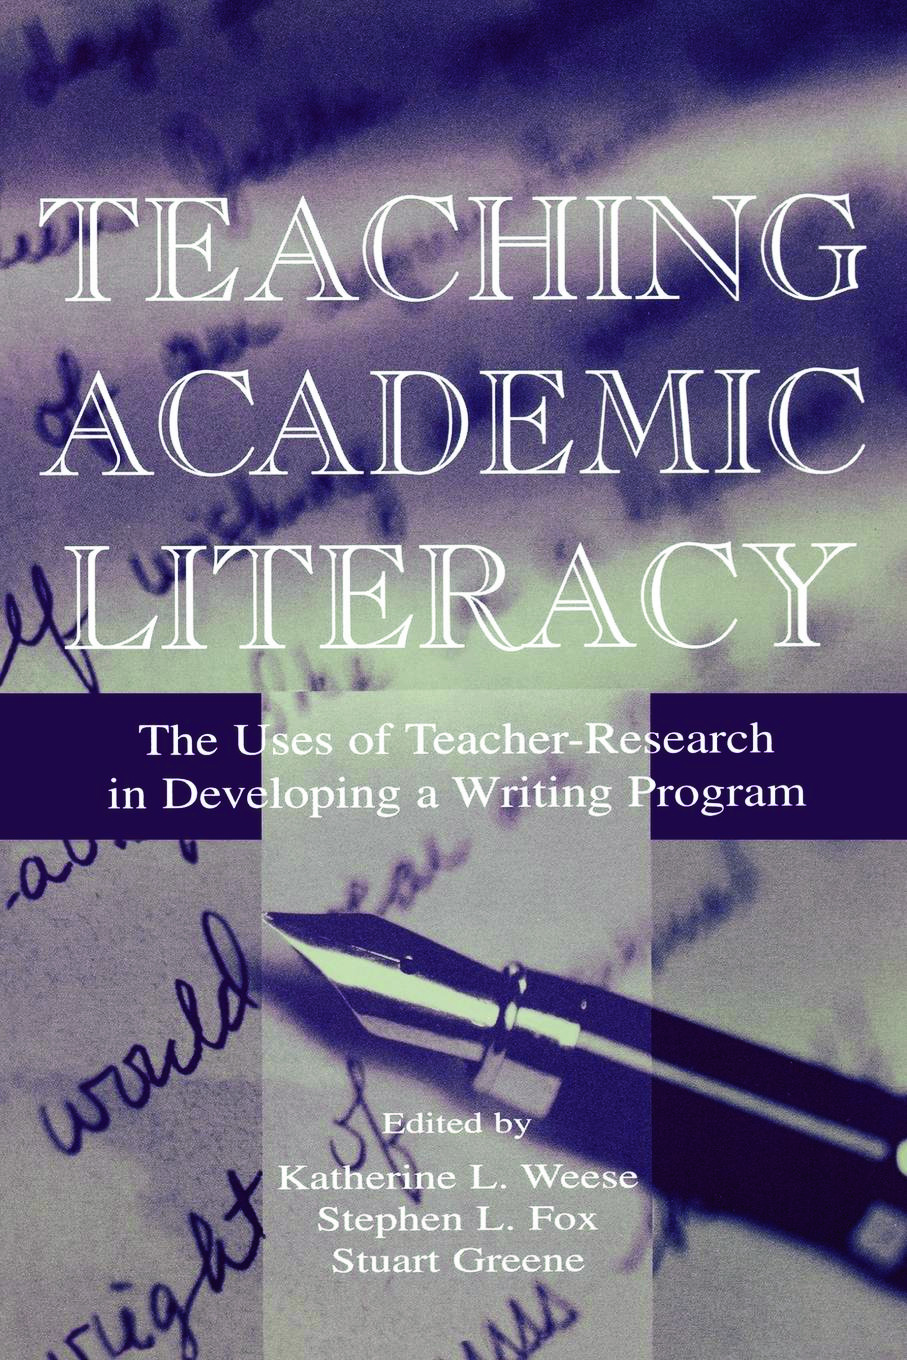 Teaching Academic Literacy